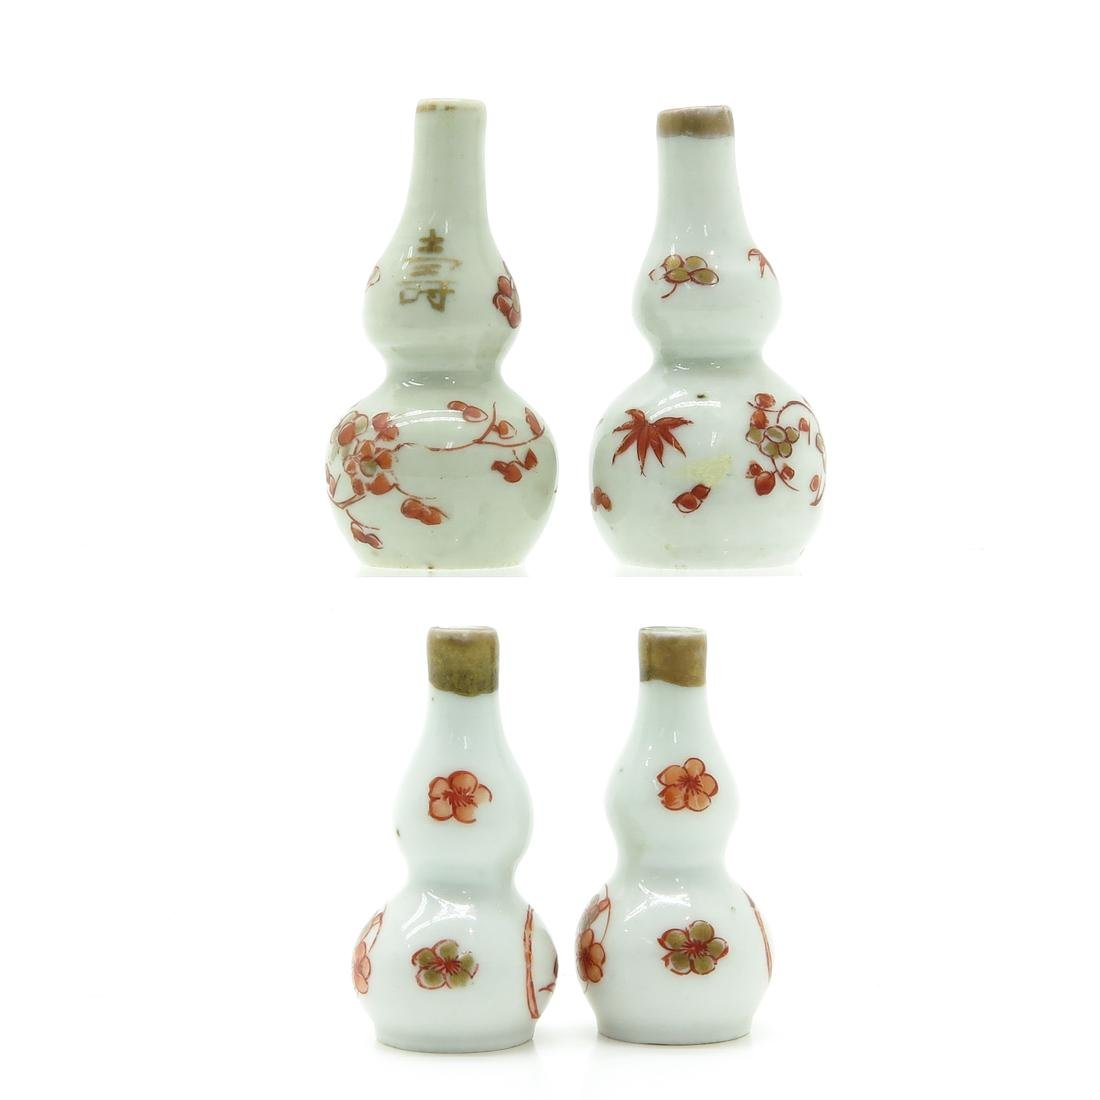 Two Pair of Miniature Doll House Vases - 2